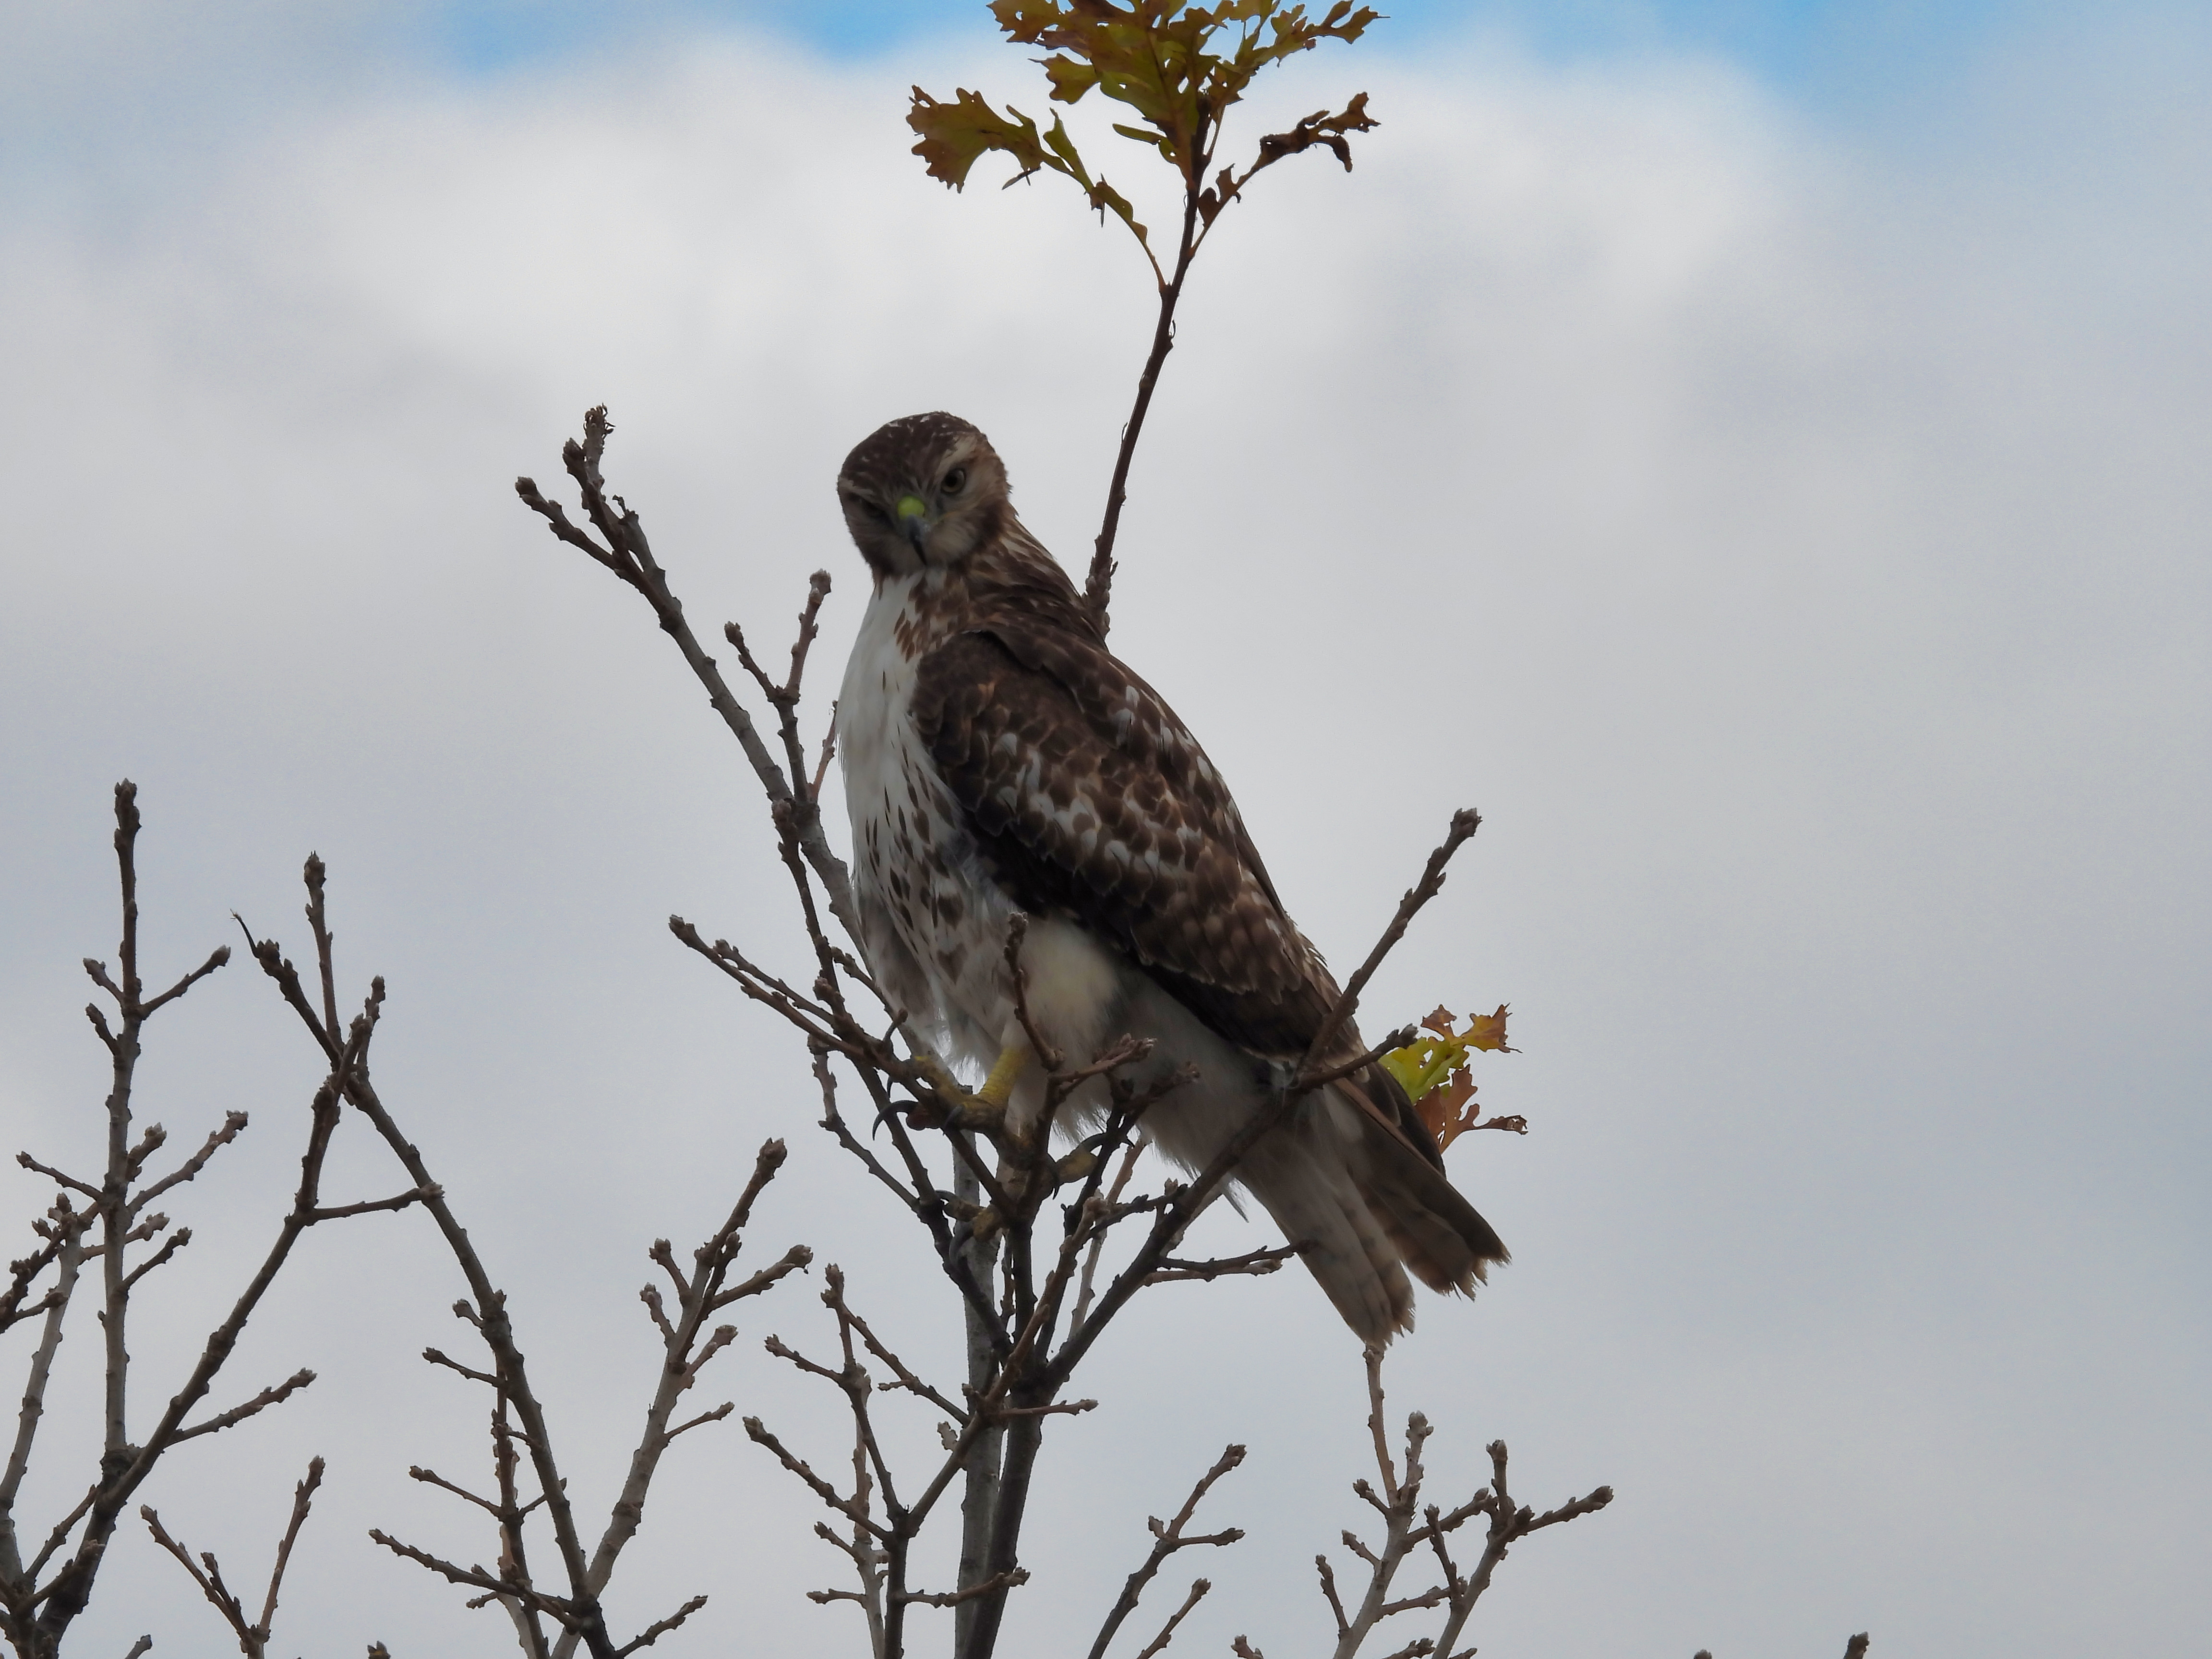 A Red-Tailed Hawk Bird of Prey Perched at Top of Tree Looking Forward with Clouds and a Spot of Bright Blue Sky and Autumn Colored Leaves on Tree Top